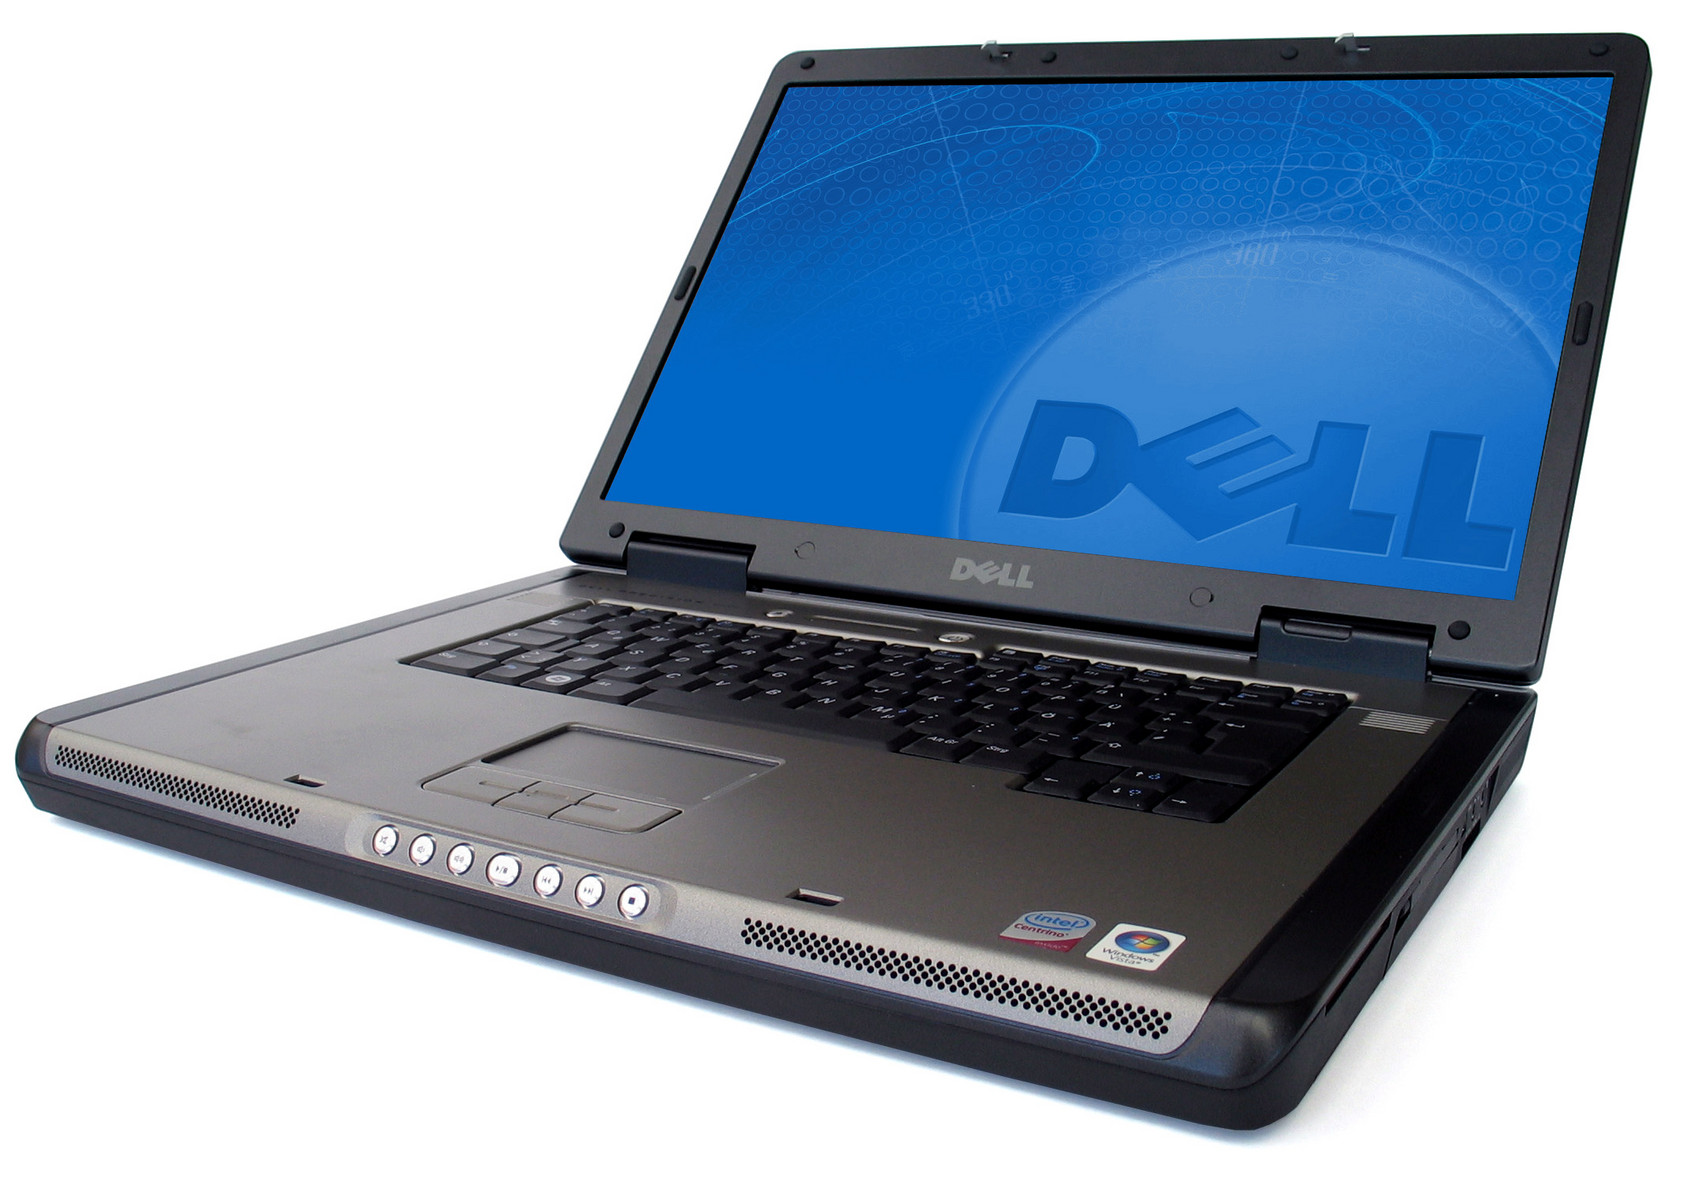 131555 further Review furthermore Search further 232067136179 in addition Dell Xps 630i Wallpaper. on dell xps 625